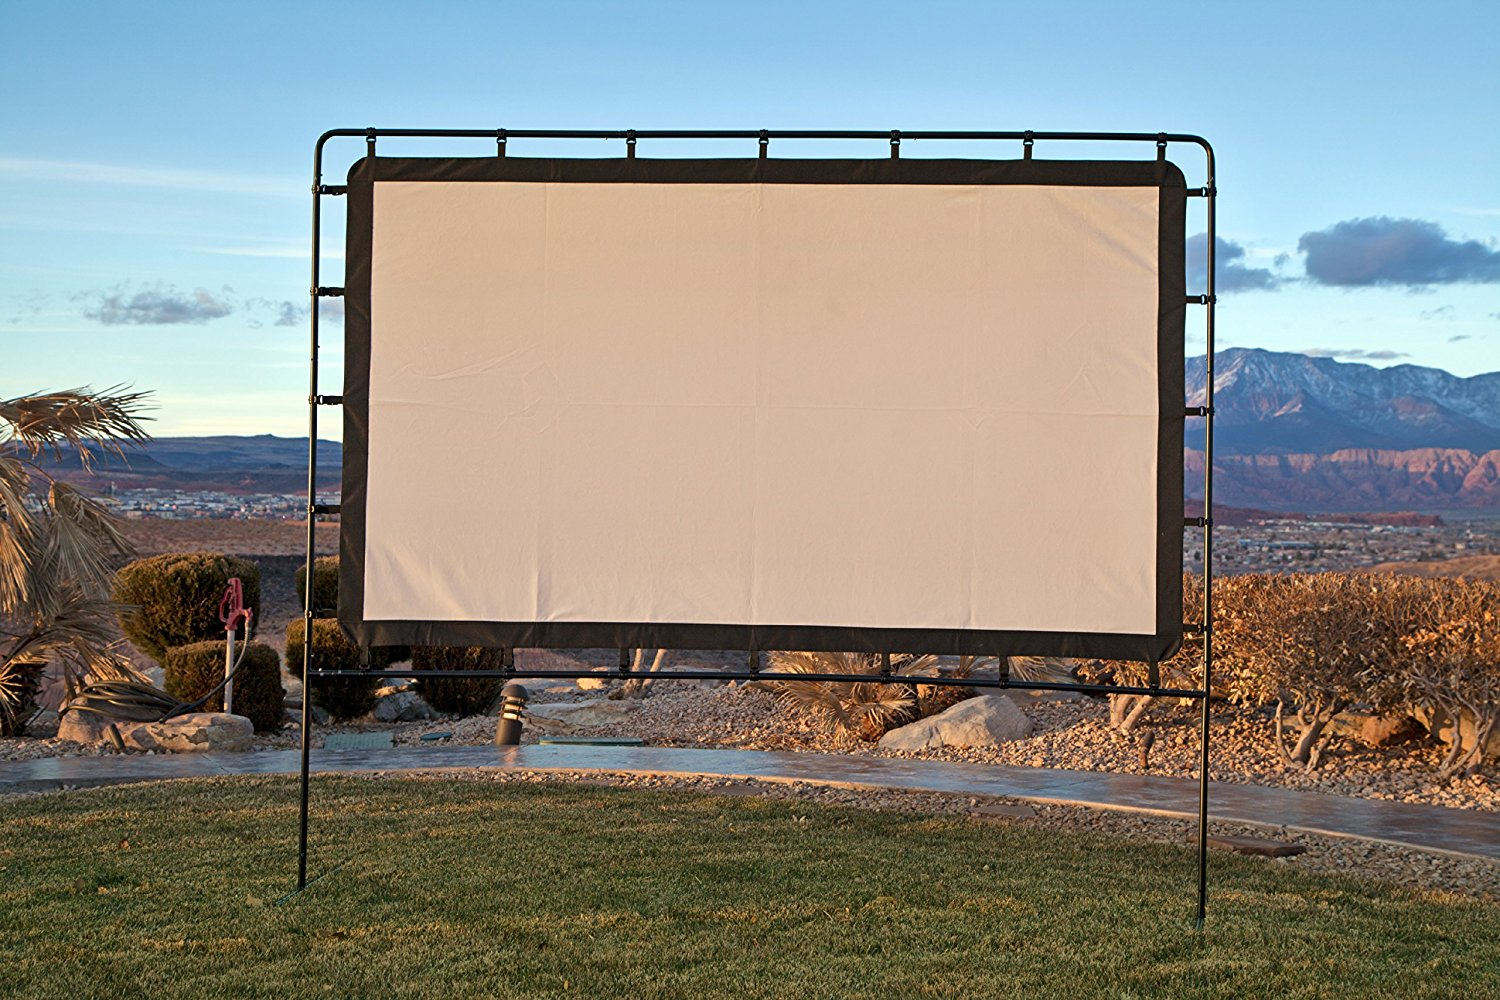 Indoor Outdoor Projection Screen Rental Aurora